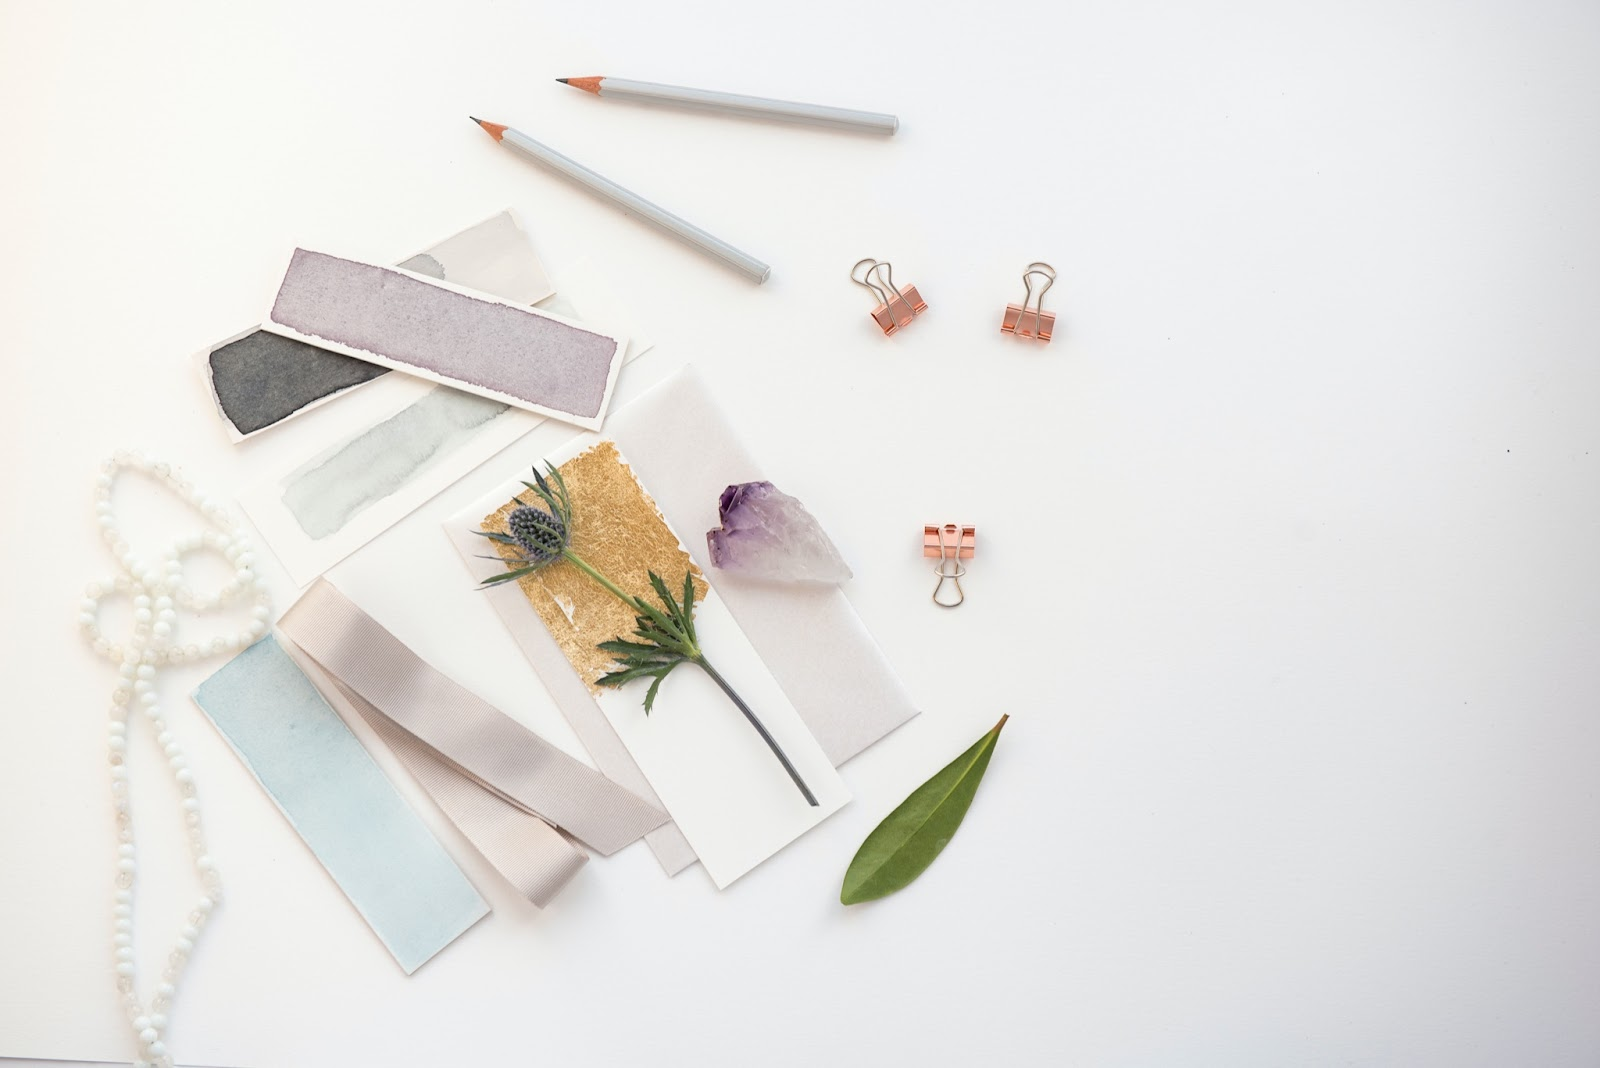 A selection of lilac and blue paint swatches, flowers, beads, and art materials are laid out on a plain white background.